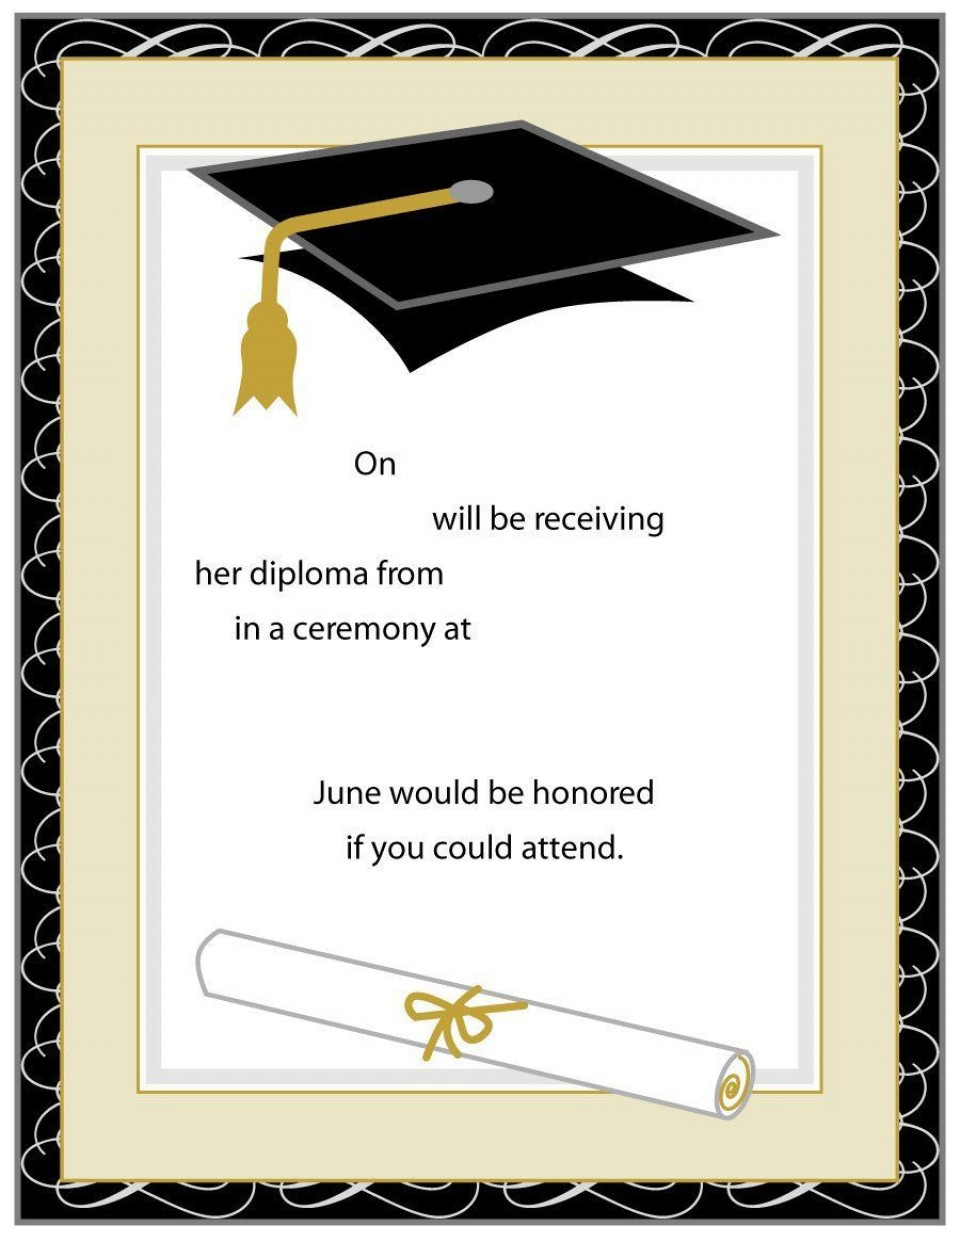 001 Unforgettable Microsoft Word Graduation Invitation Template Highest Quality  Party960